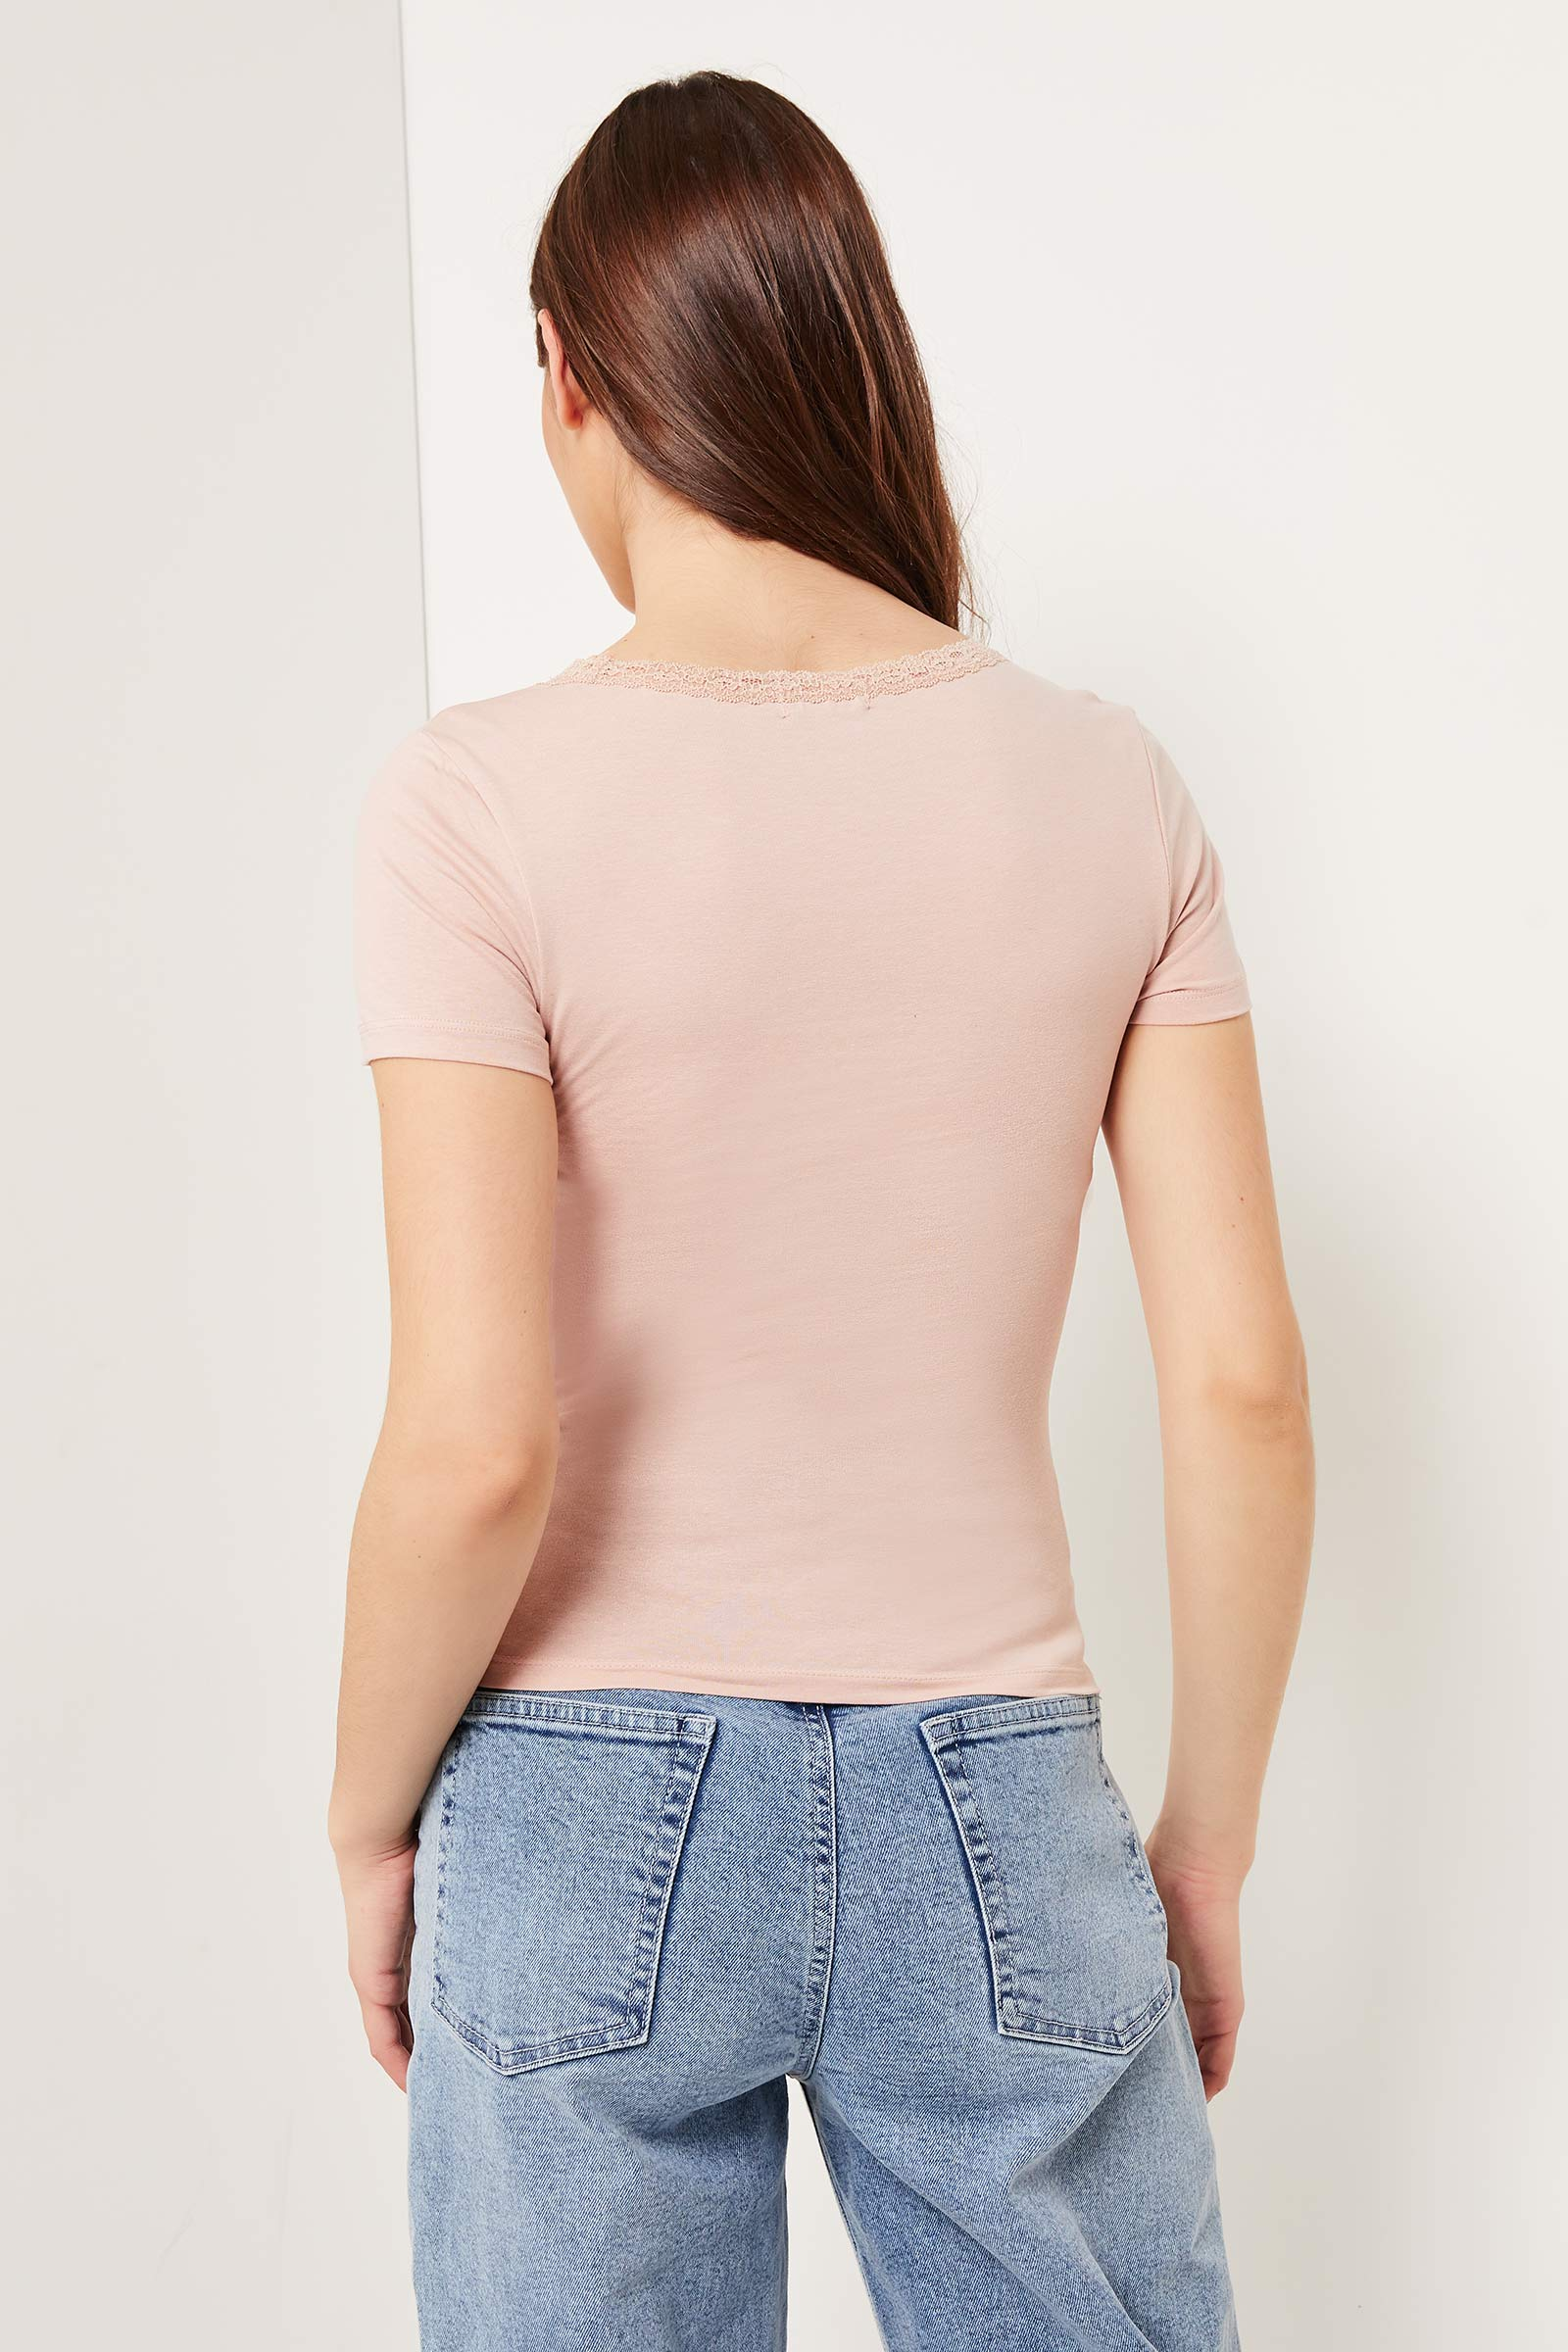 Basic Tee with Lace